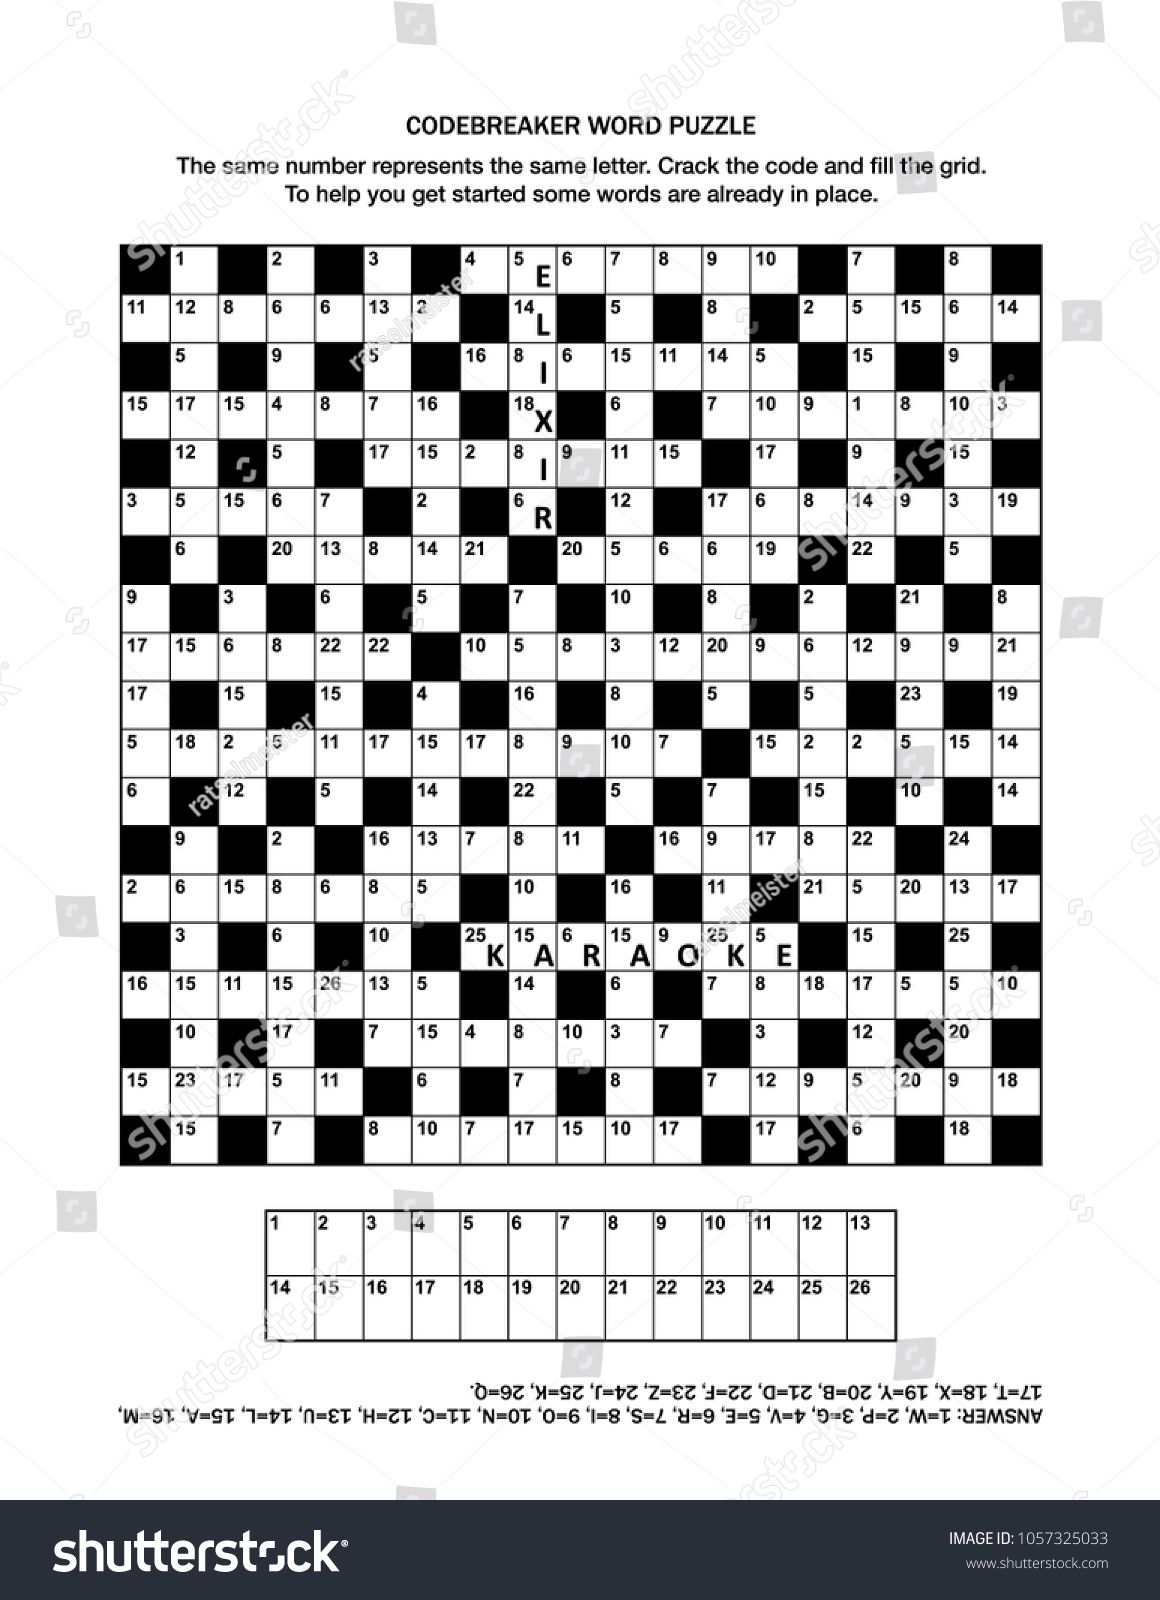 Puzzle Page With Codebreaker Codeword Code Cracker Word